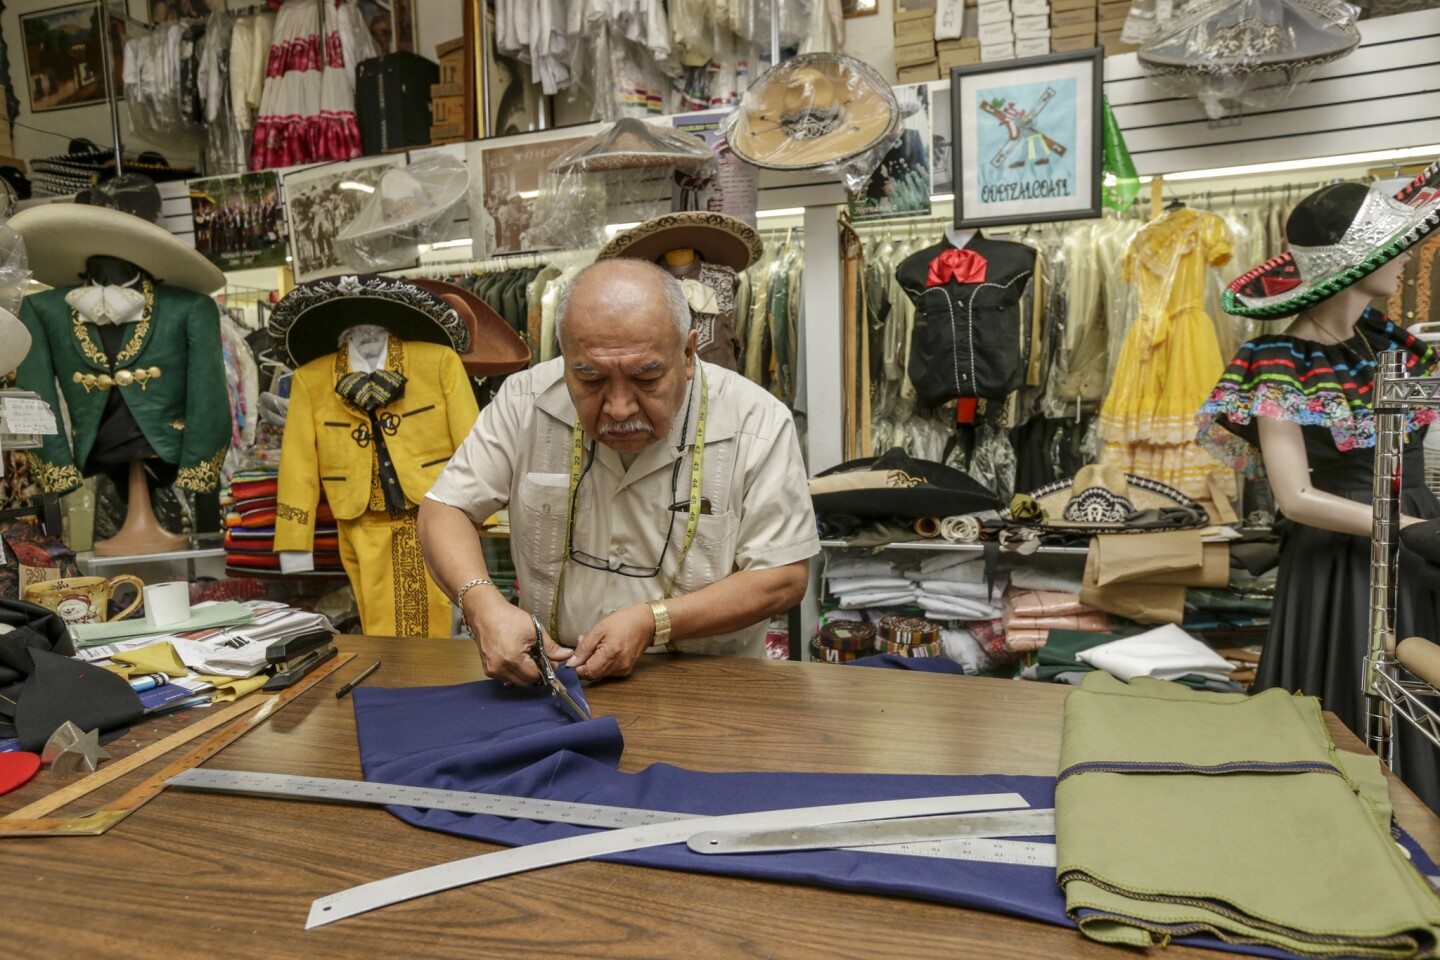 Jorge Tello, 62, said last night he was happy, thinking that Hillary Clinton would win the presidency. This morning, he woke up sad, worried about how a Donald Trump presidency would affect immigrants like him. Tello has owned a mariachi uniform tailoring shop in Boyle Heights for the last 30 years.